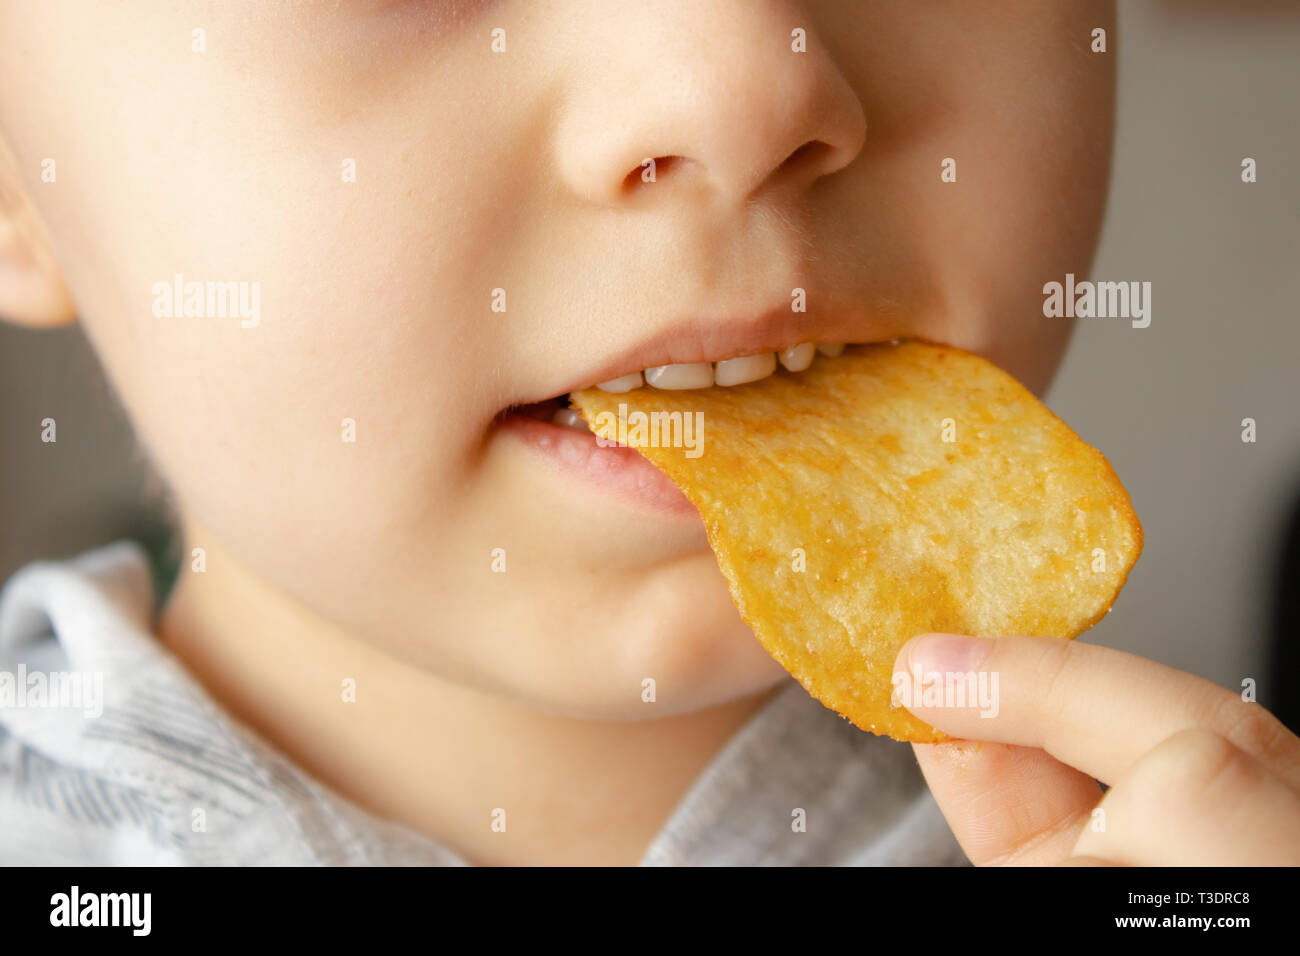 Baby eating chips. Close-up. The child holds the chips. Junk food. - Stock Image